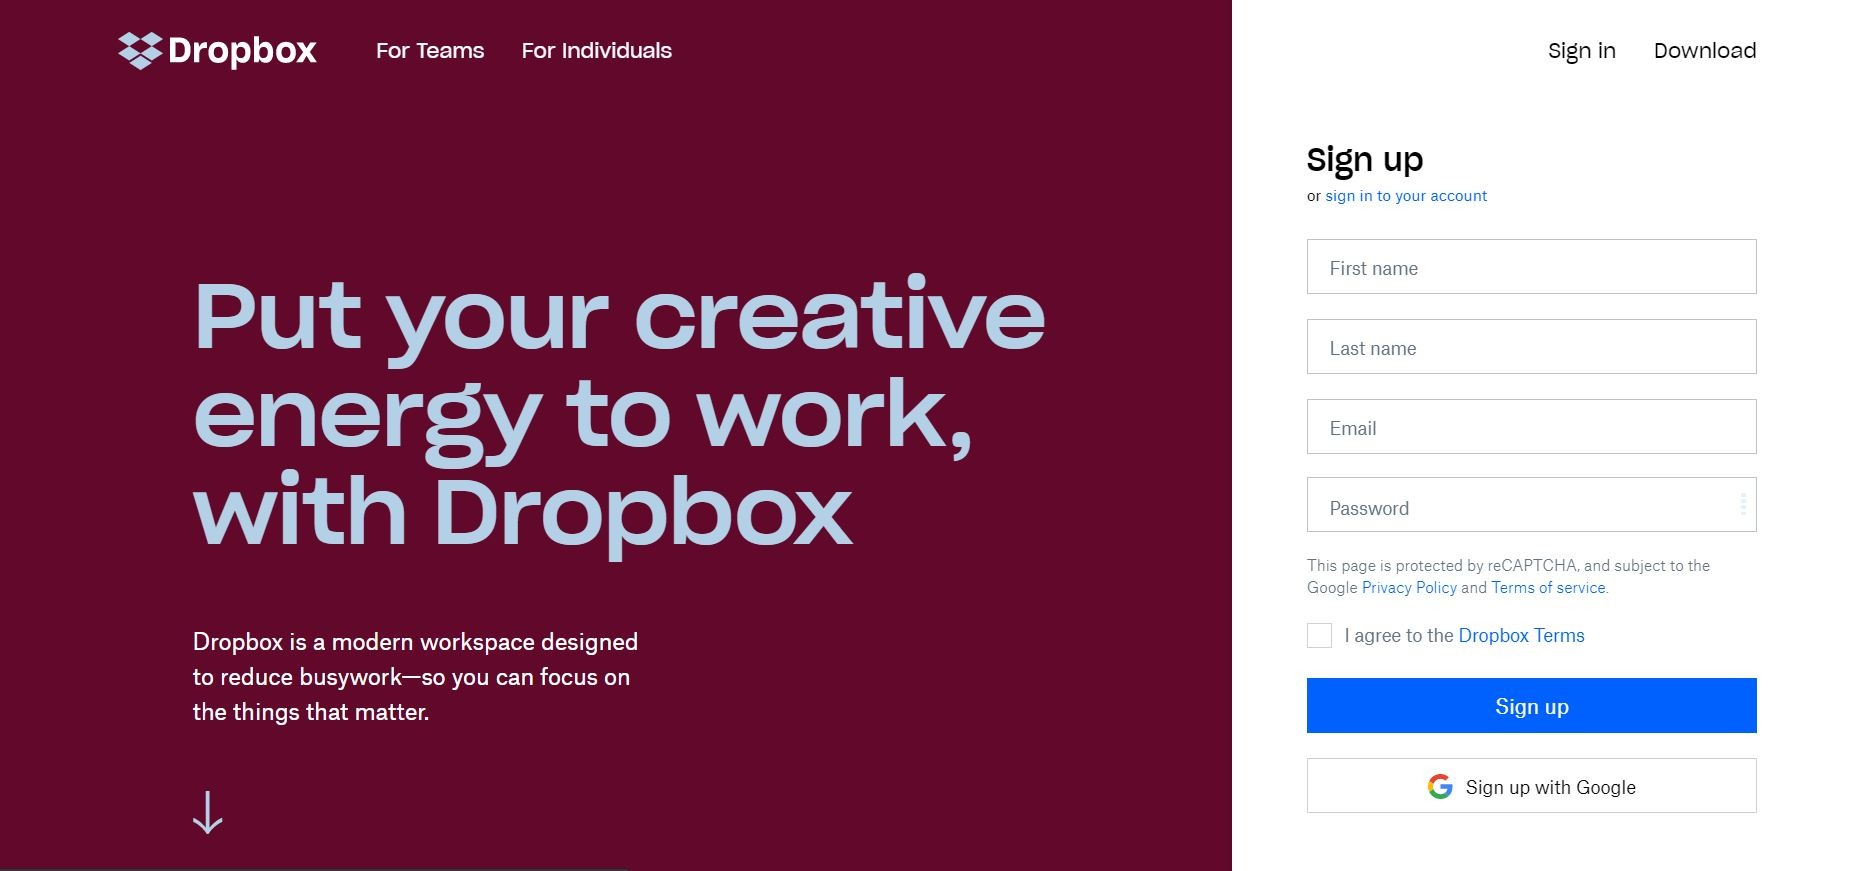 DropBox Homepage - Embed Dropbox images and Videos